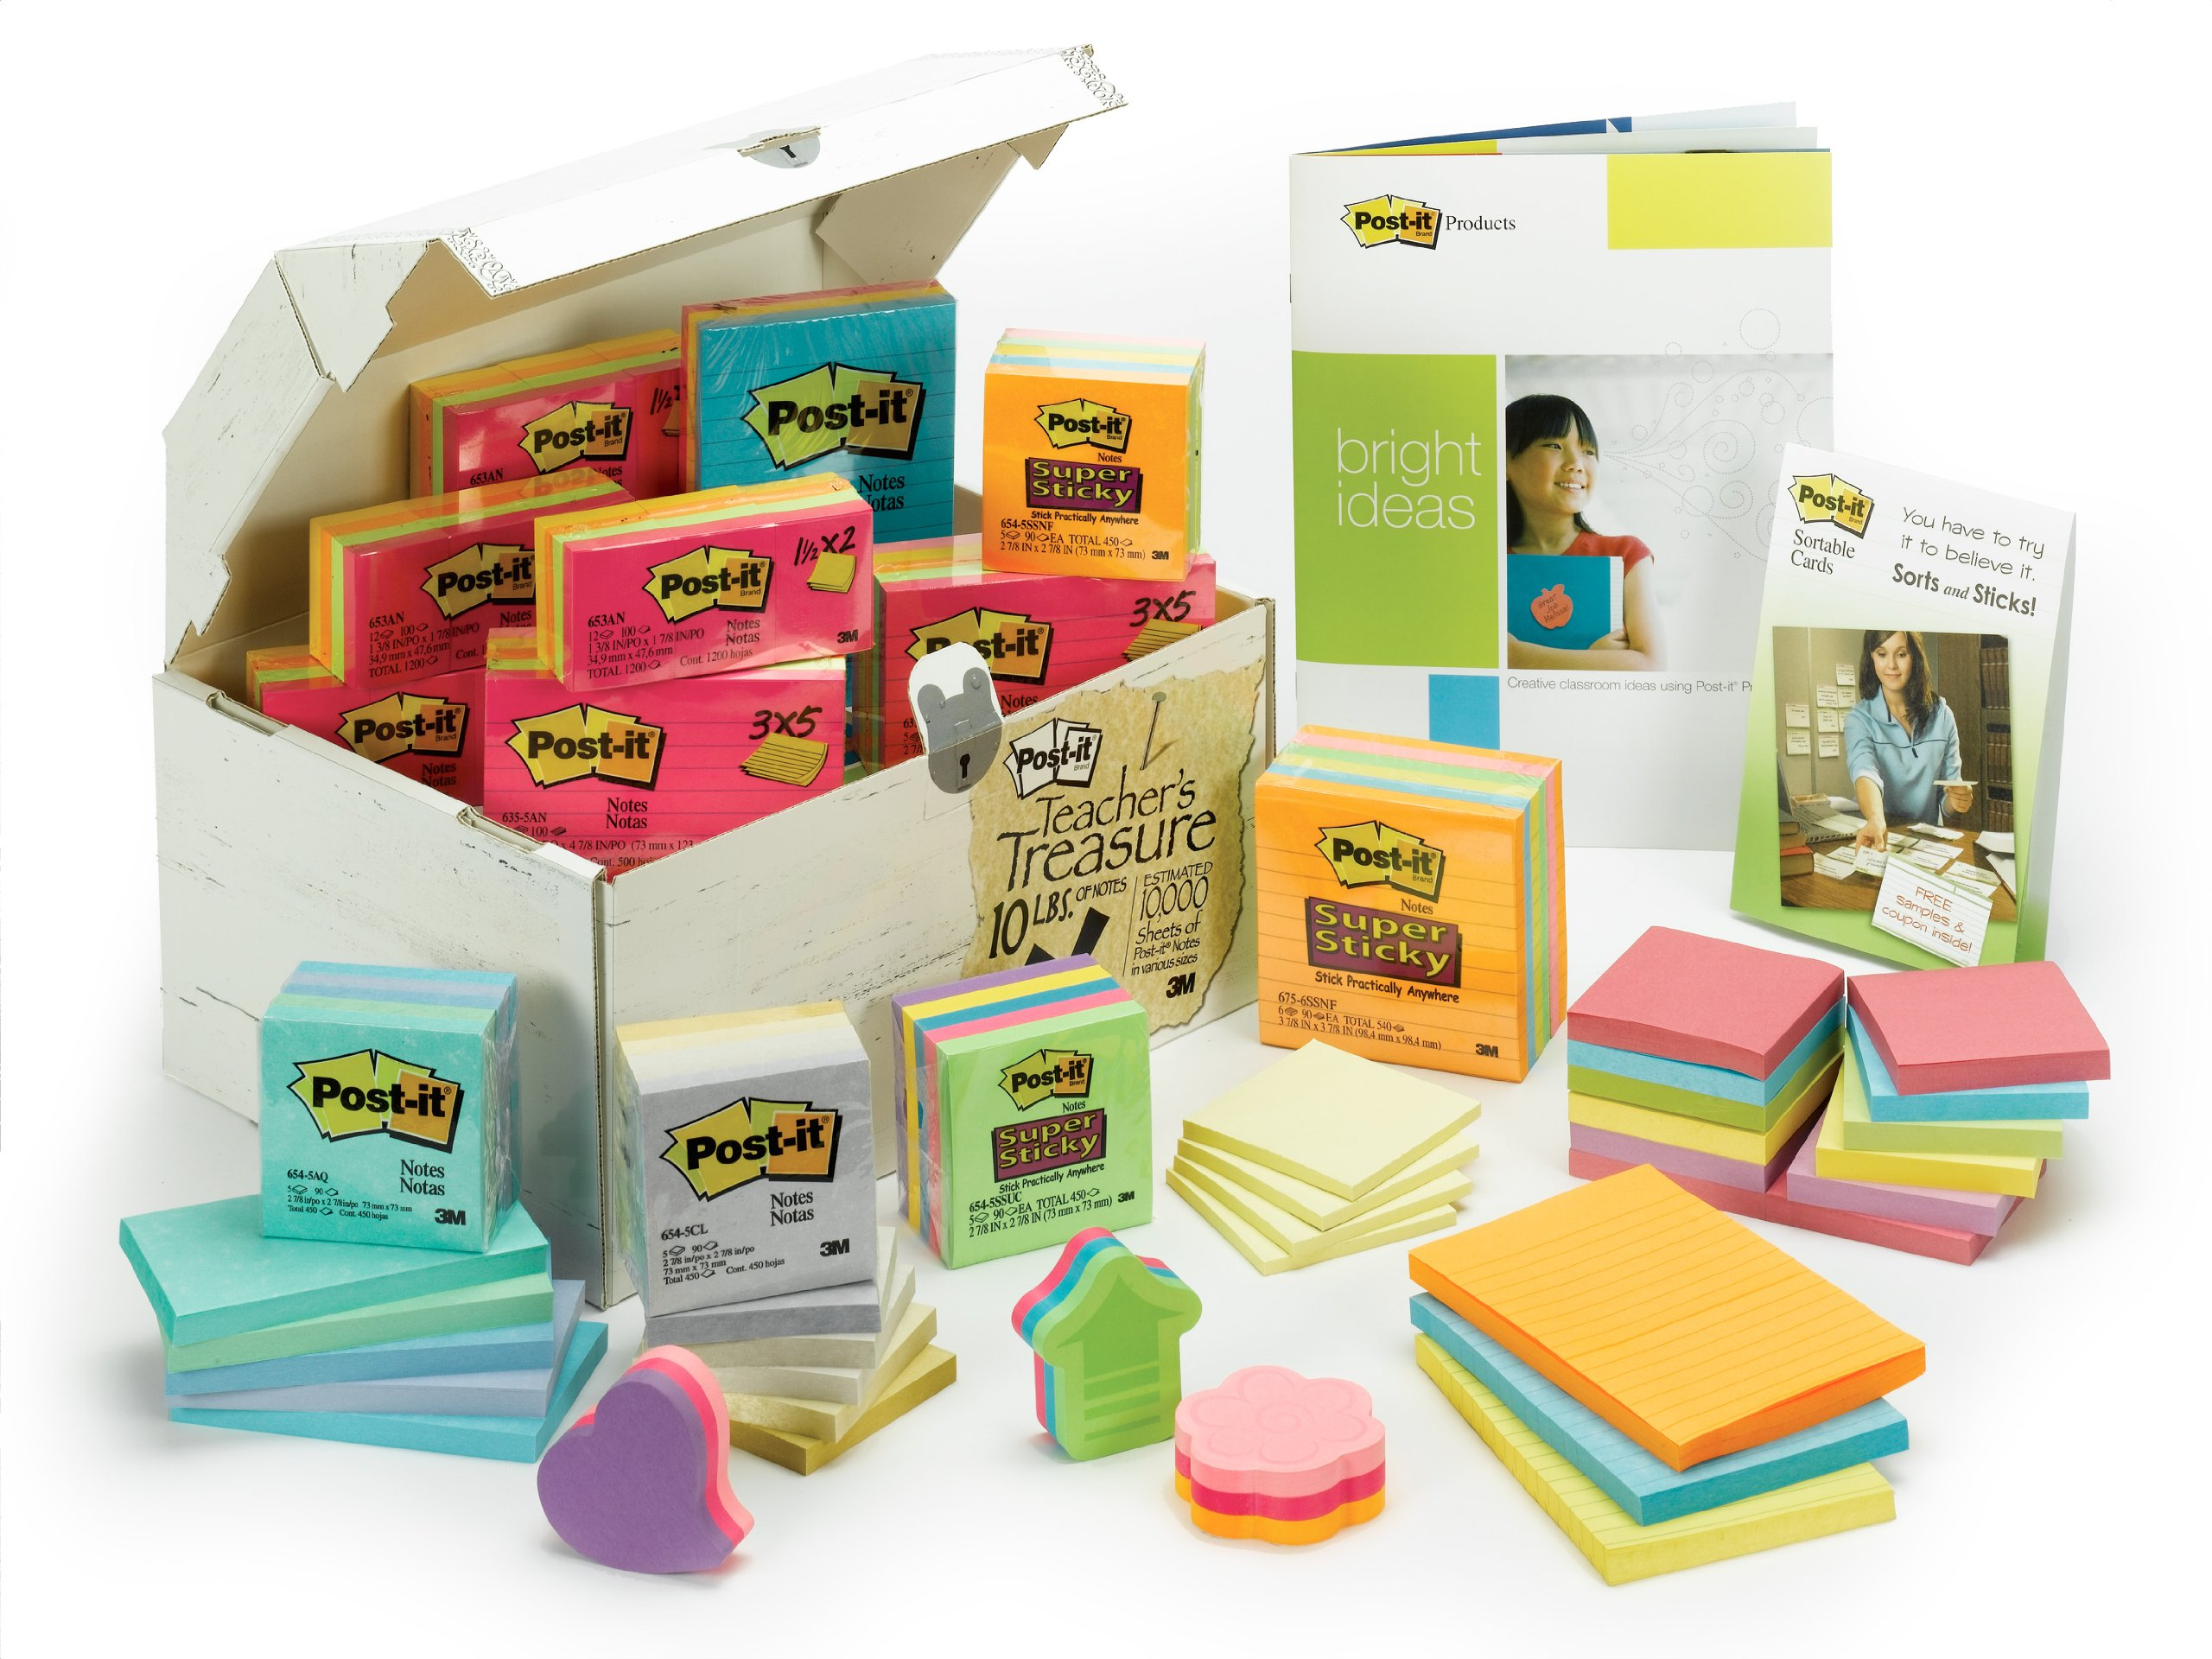 Post-it Notes, America's #1 Favorite Sticky Note, Assorted 10 Pound Variety Pack of Notes for Teachers (Teachers Treasure Chest) by Post-it